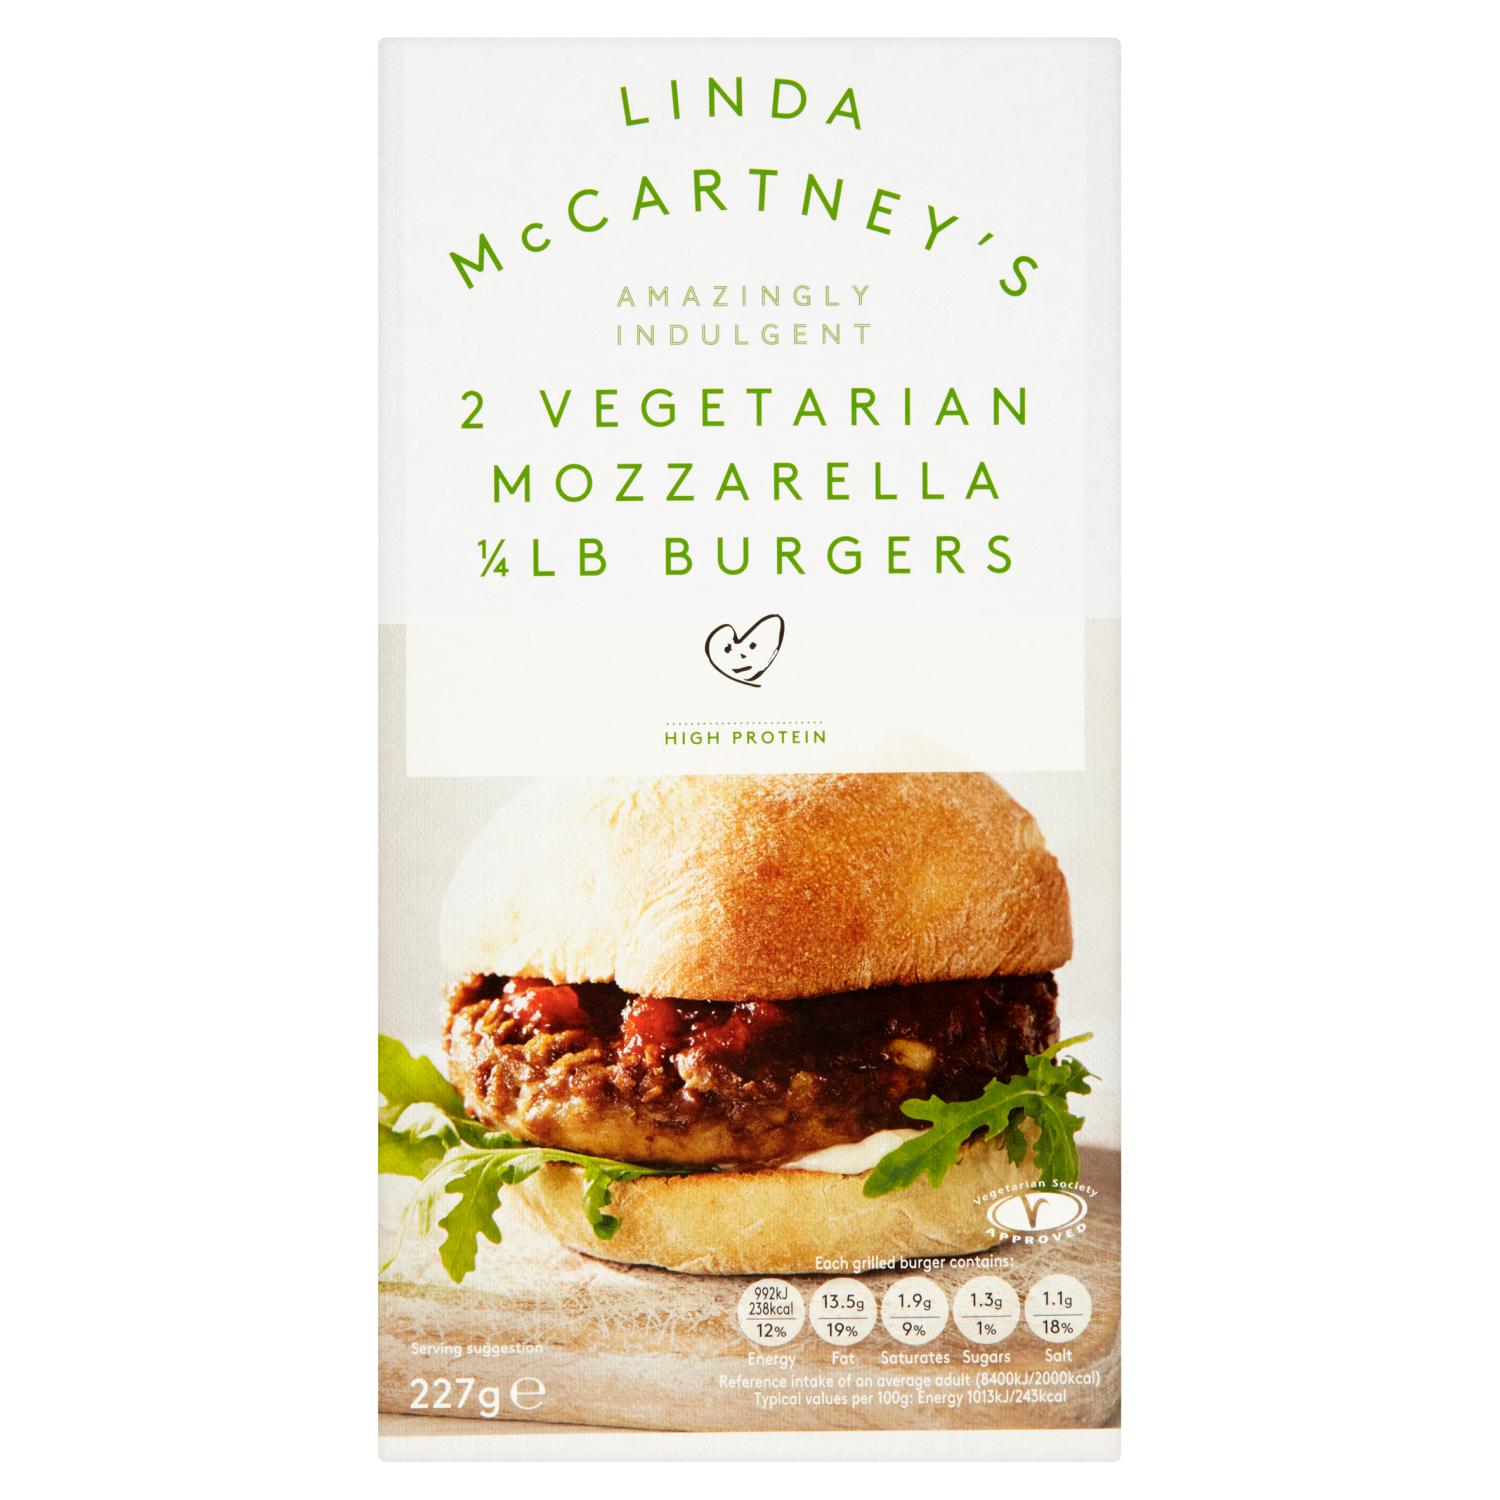 Delight your taste buds with Linda McCartney's Mozzarella Burgers at Tesco for just £1.25 now